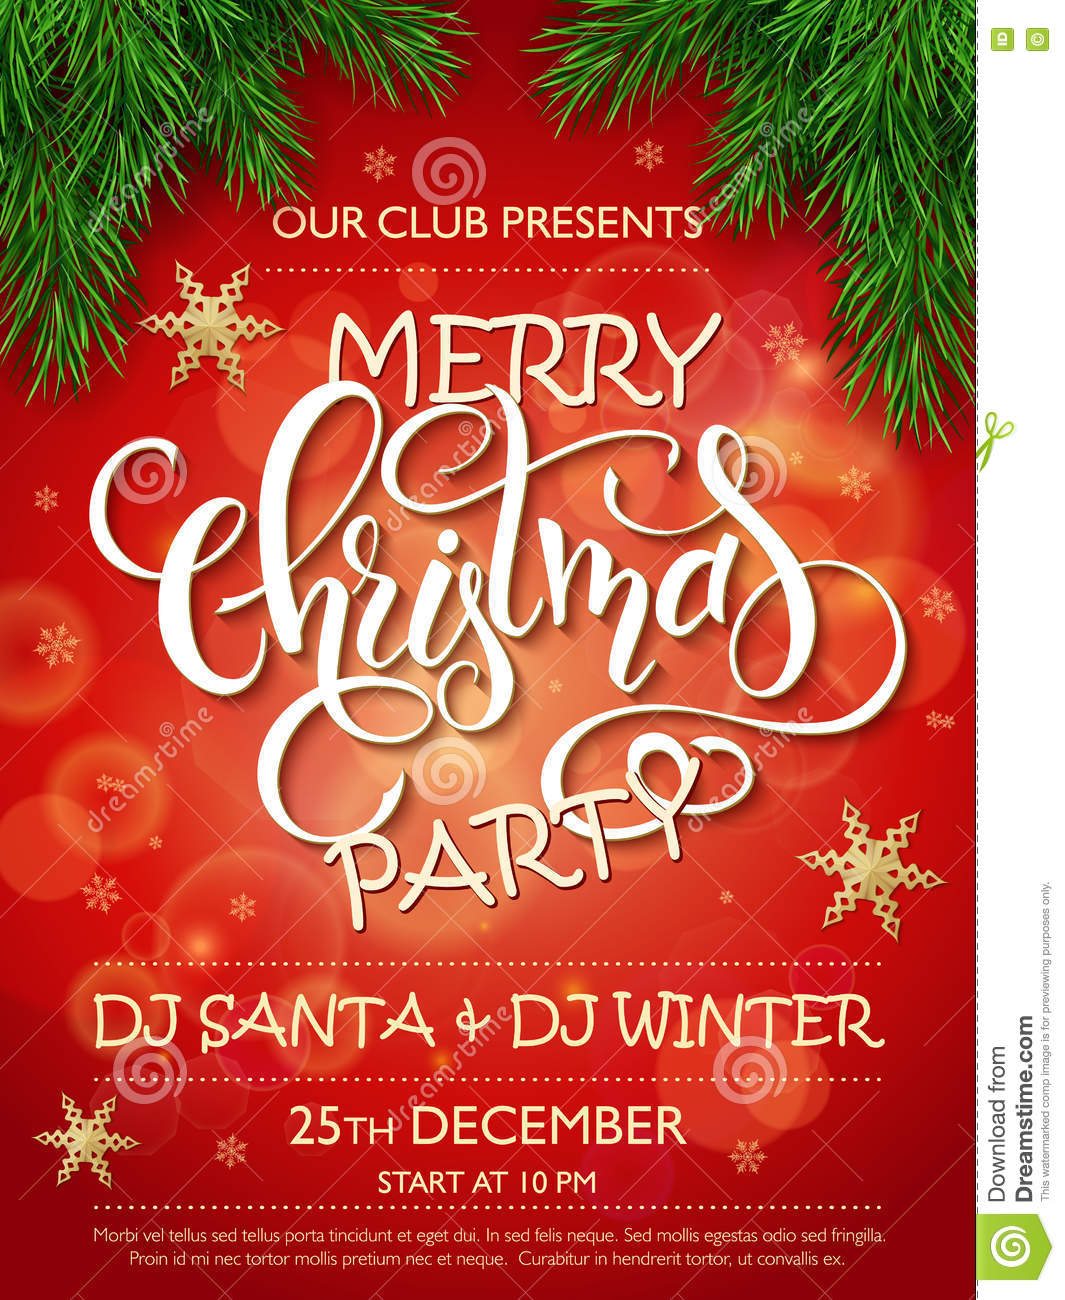 Vector merry christmas party poster with christmas fir tree branches vector merry christmas party poster with christmas fir tree branches golden stars m4hsunfo